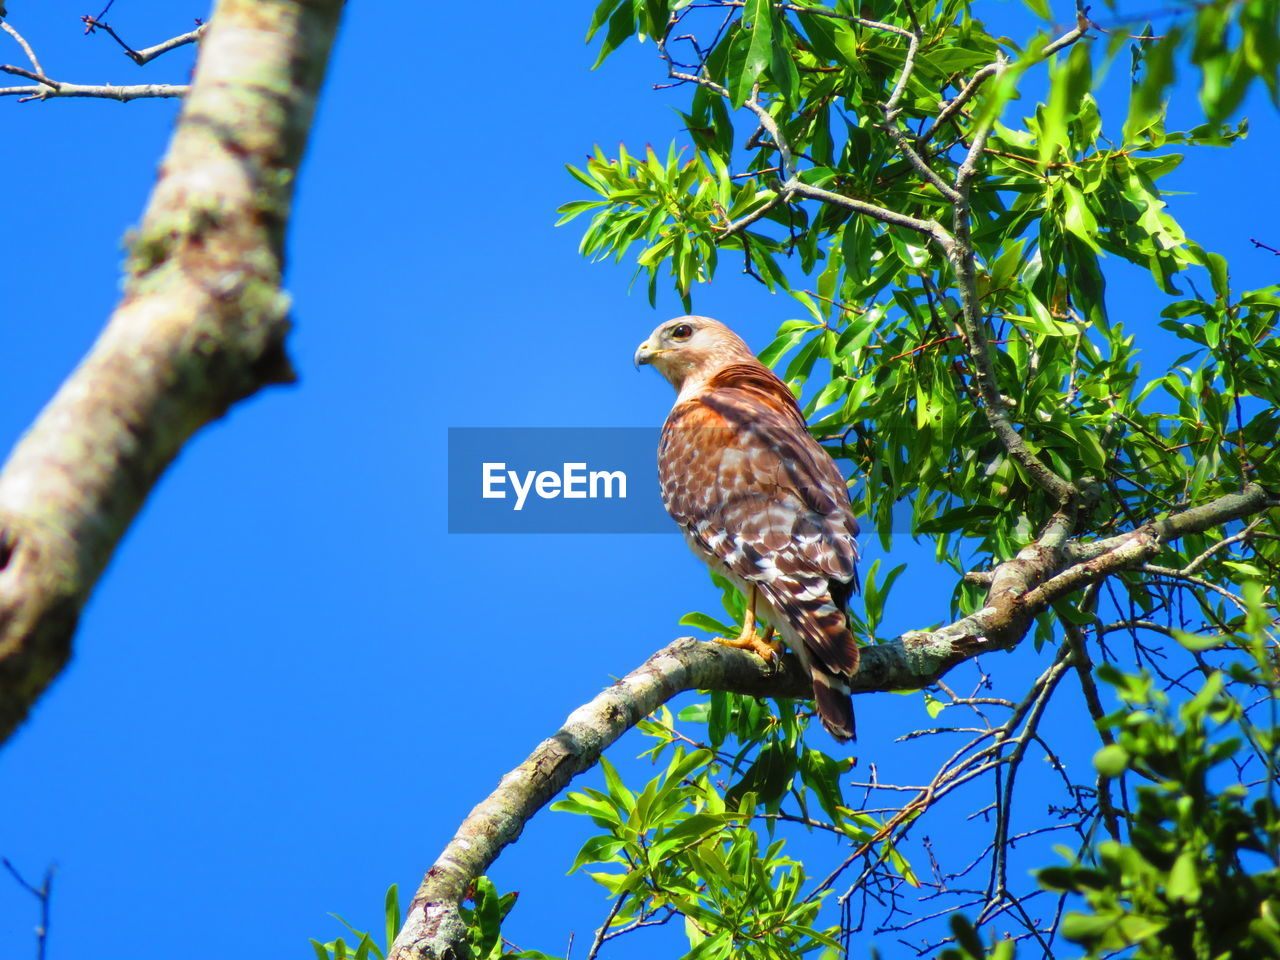 animal themes, bird, plant, animal, vertebrate, animal wildlife, animals in the wild, one animal, tree, branch, perching, low angle view, blue, sky, nature, no people, clear sky, day, growth, plant part, outdoors, eagle